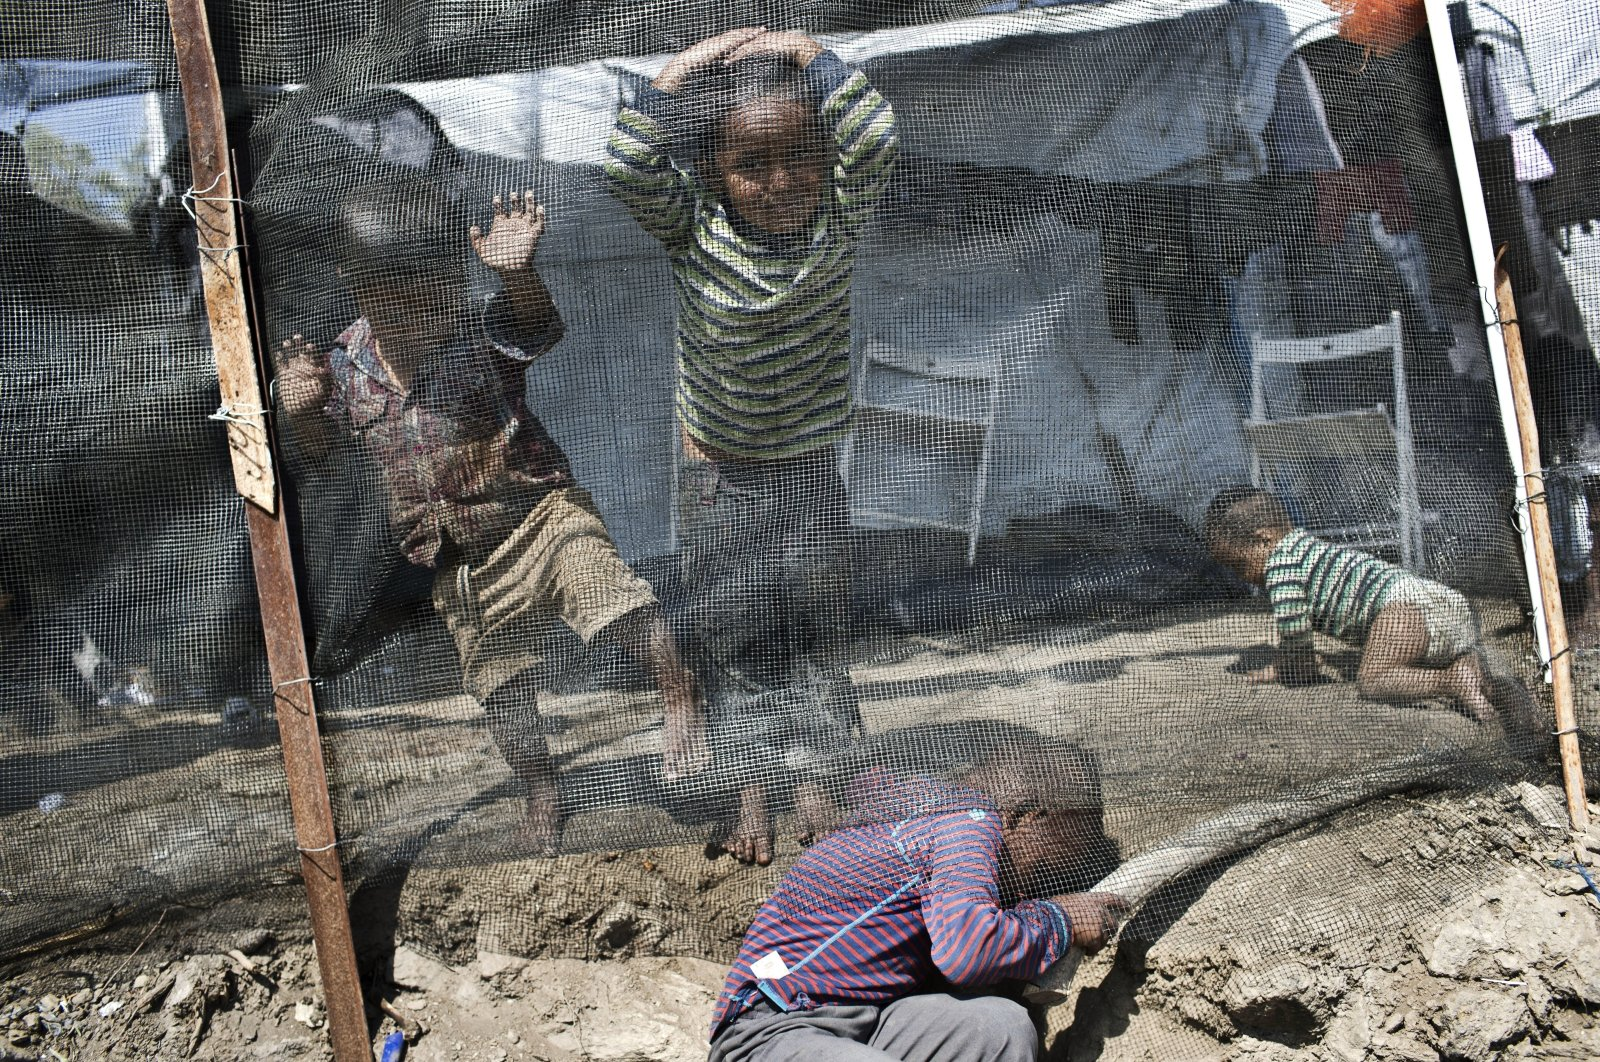 Children play inside the Moria refugee camp on the northeastern Aegean island of Lesbos, Greece, May 22, 2018. (AP Photo)